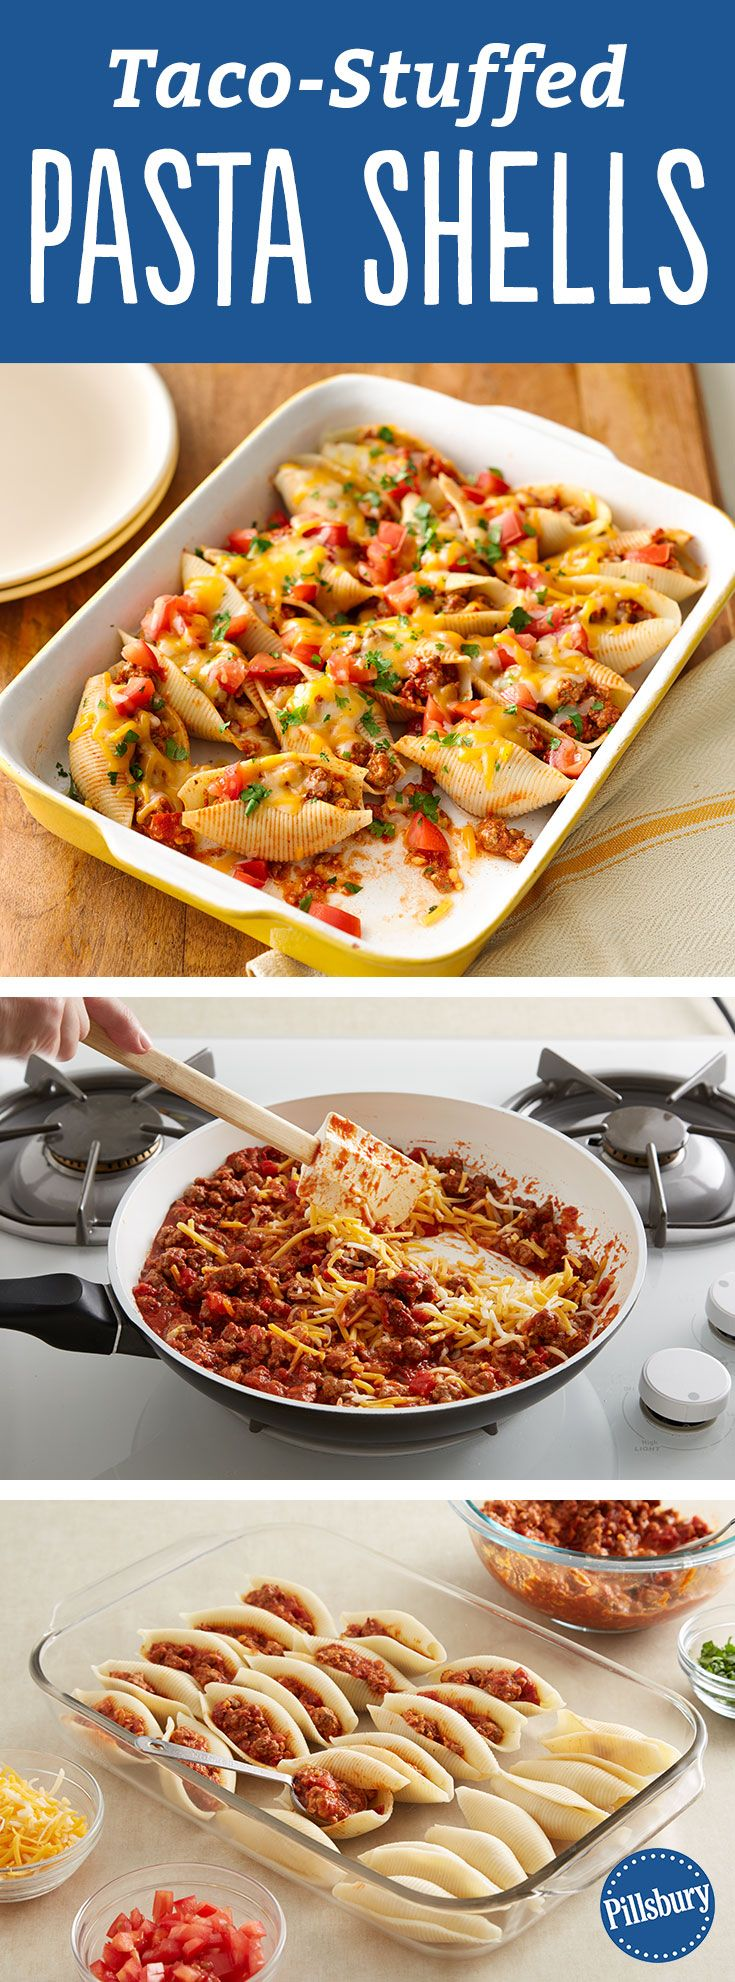 """Our members say this Mexican-inspired take on stuffed shells is """"a keeper!"""" If you don't have ground beef on hand, try making it with chicken, turkey, black beans or even vegetarian protein crumbles. If you prefer more heat, try some chopped jalapeños on your shells."""